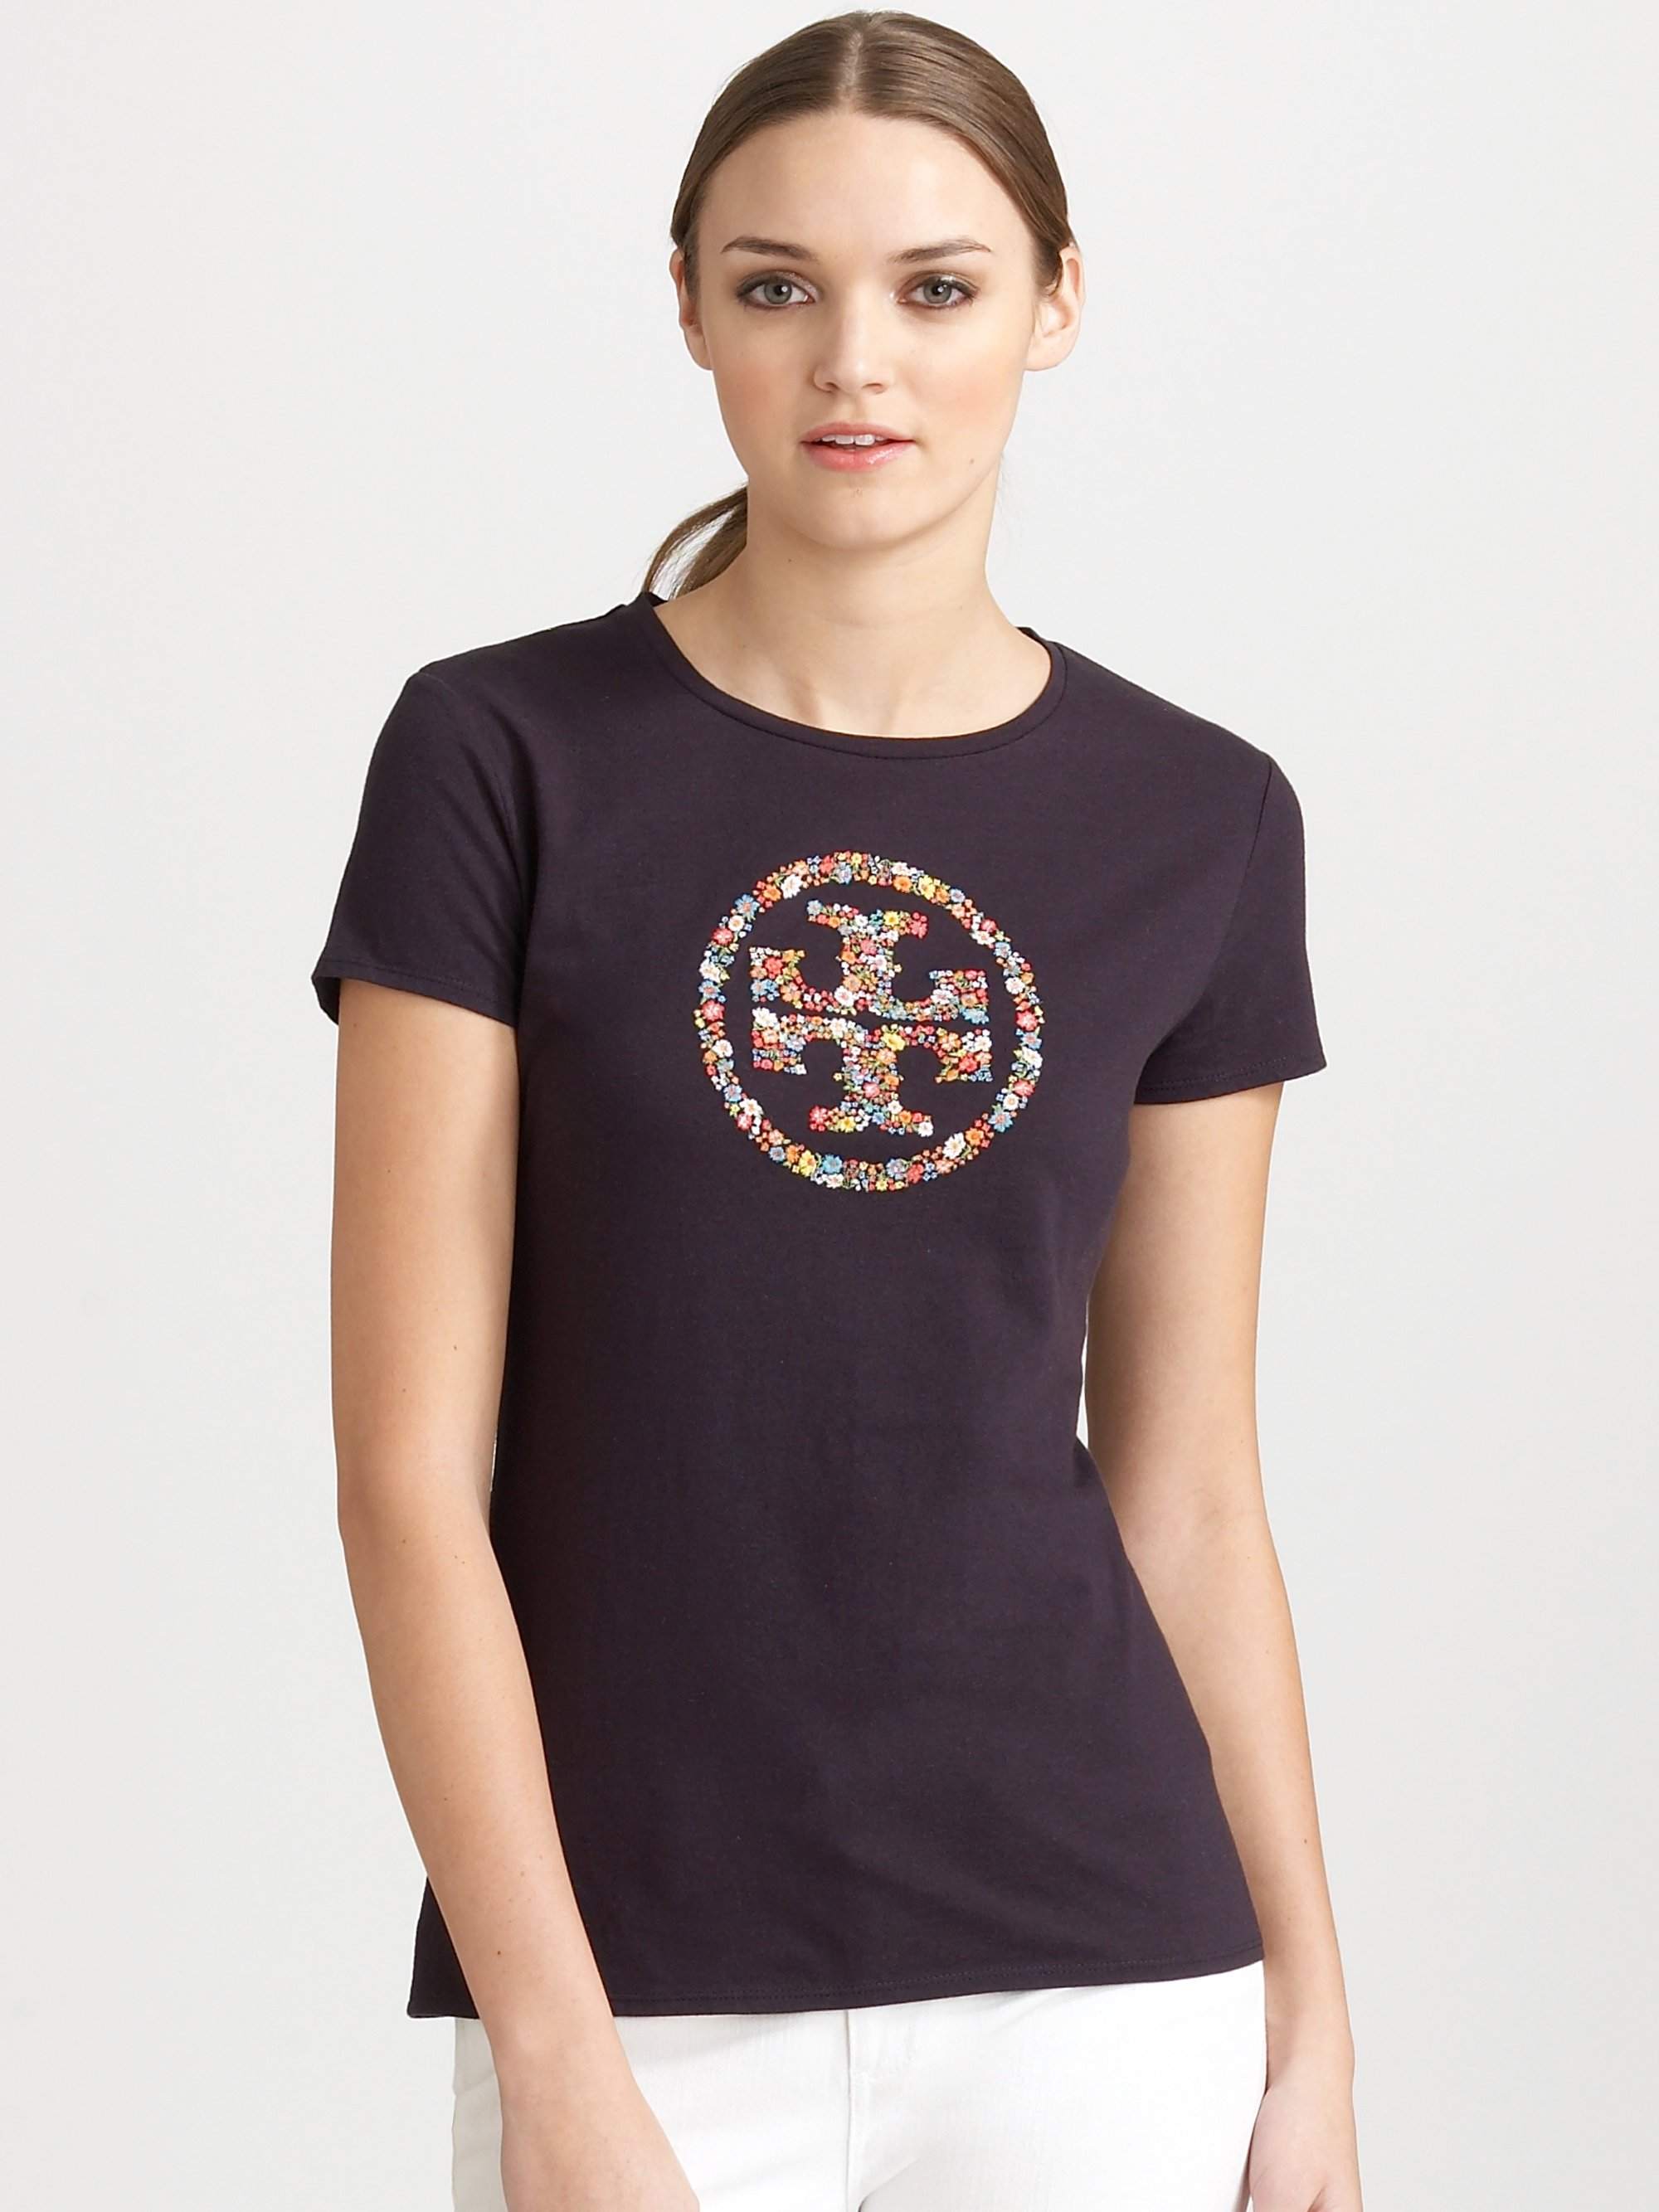 Tory burch embroidered logo tshirt in blue navy lyst for Tory burch t shirt